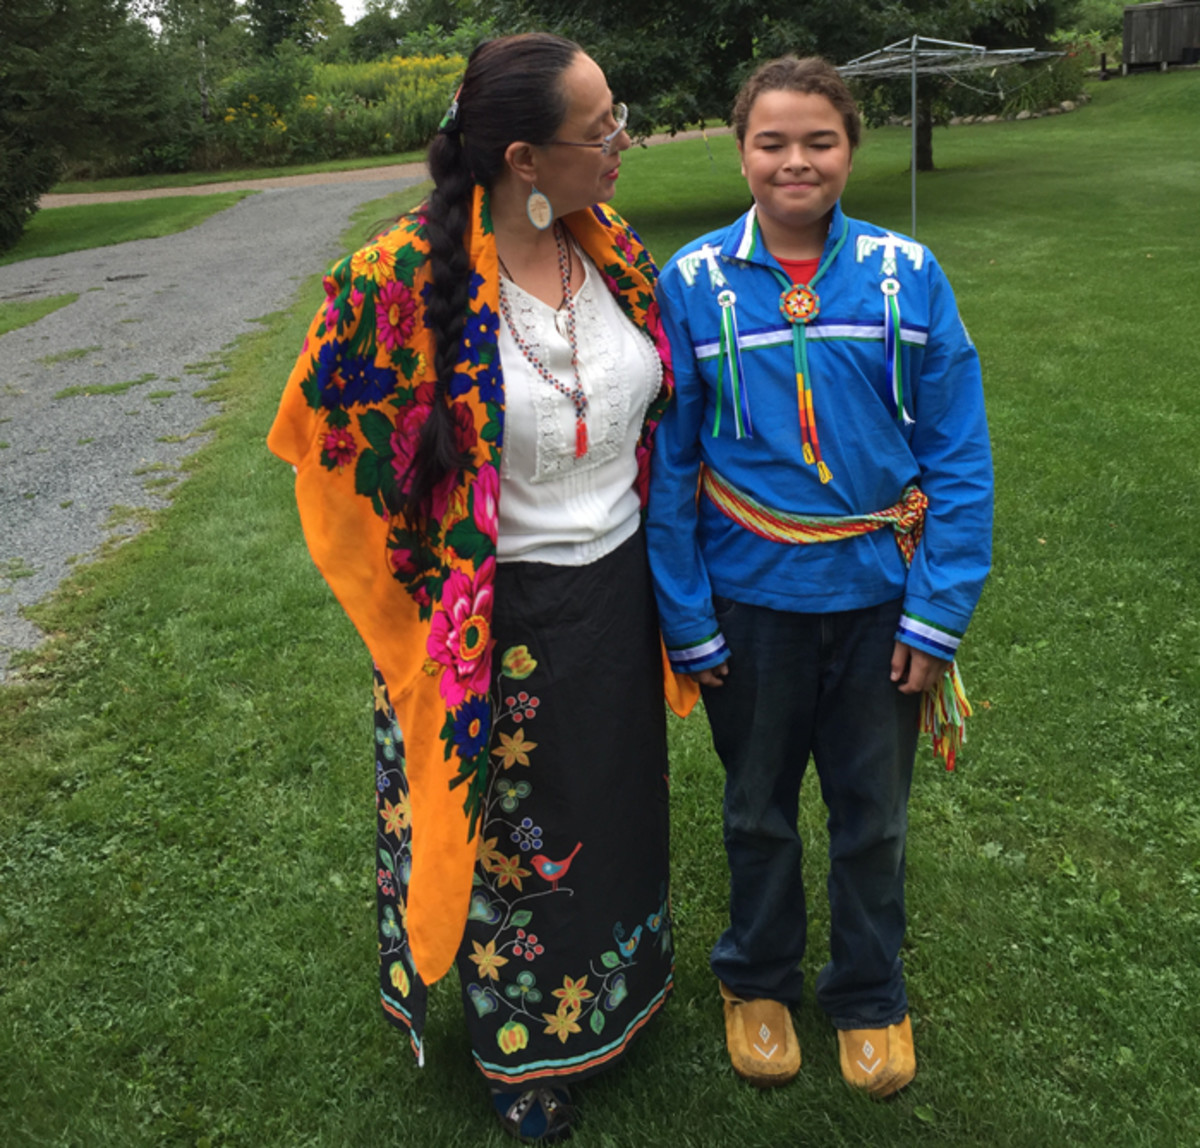 Danny L. Metz, adopted by extended family, Indian Child Welfare Act, ICWA